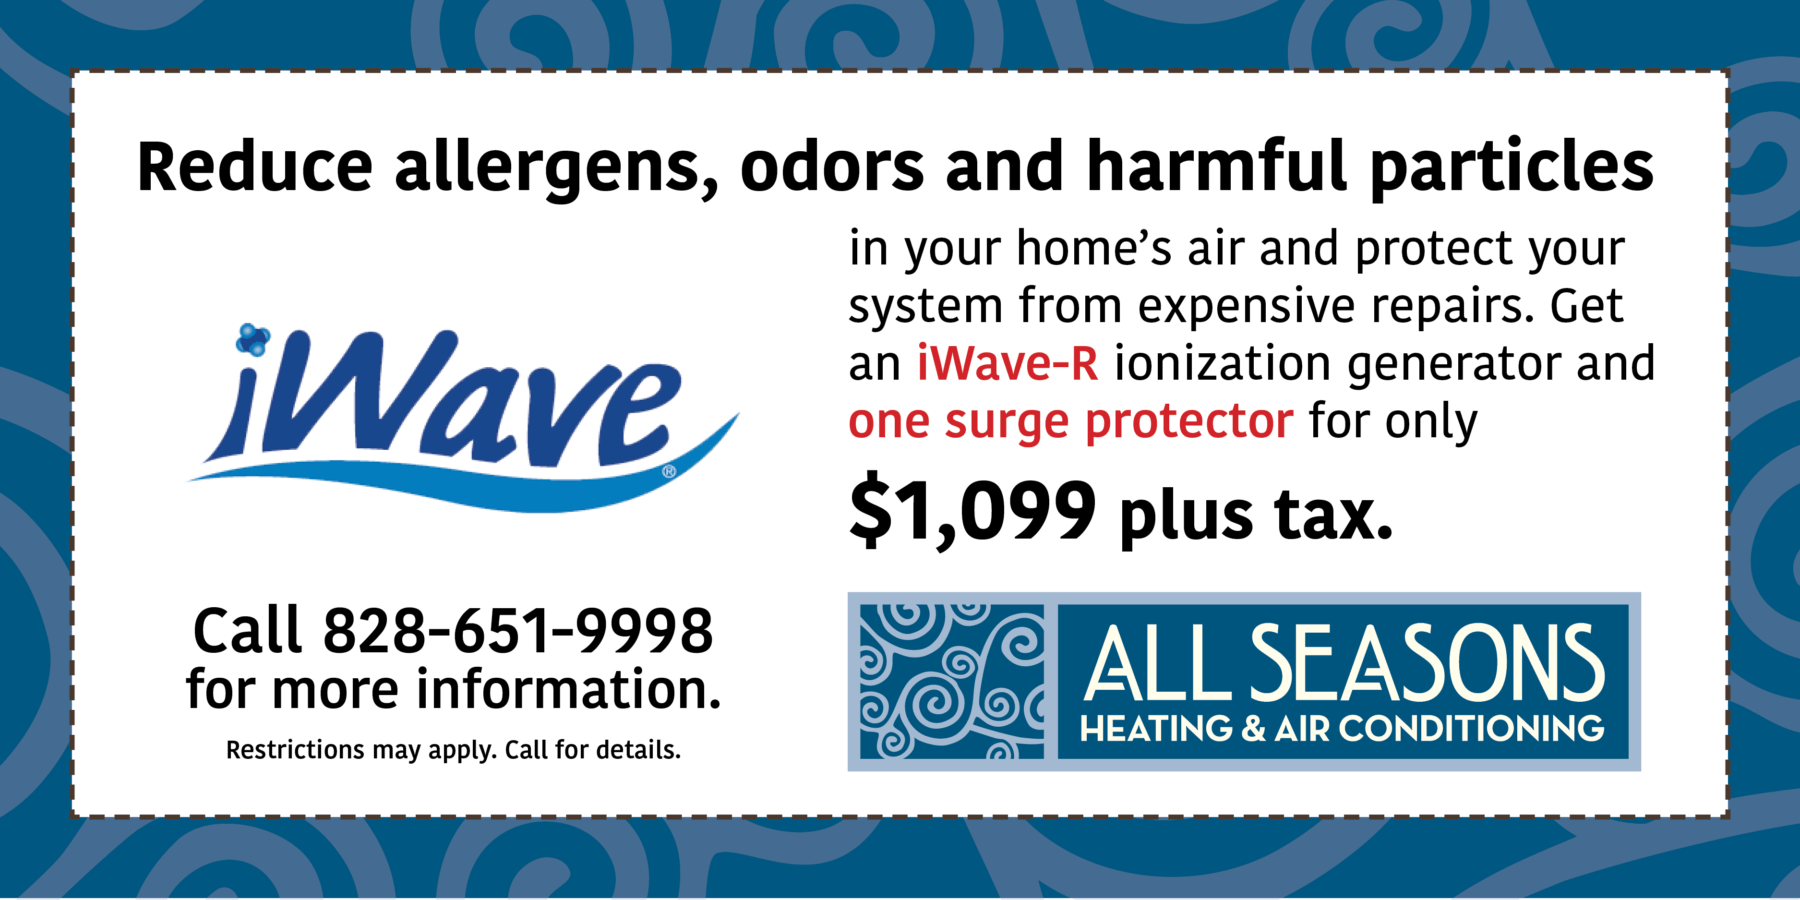 iWave-R and Surge Protector for $1099 plus tax, Indoor Air Quality, IAQ, All Seasons Heating and Air Conditioning